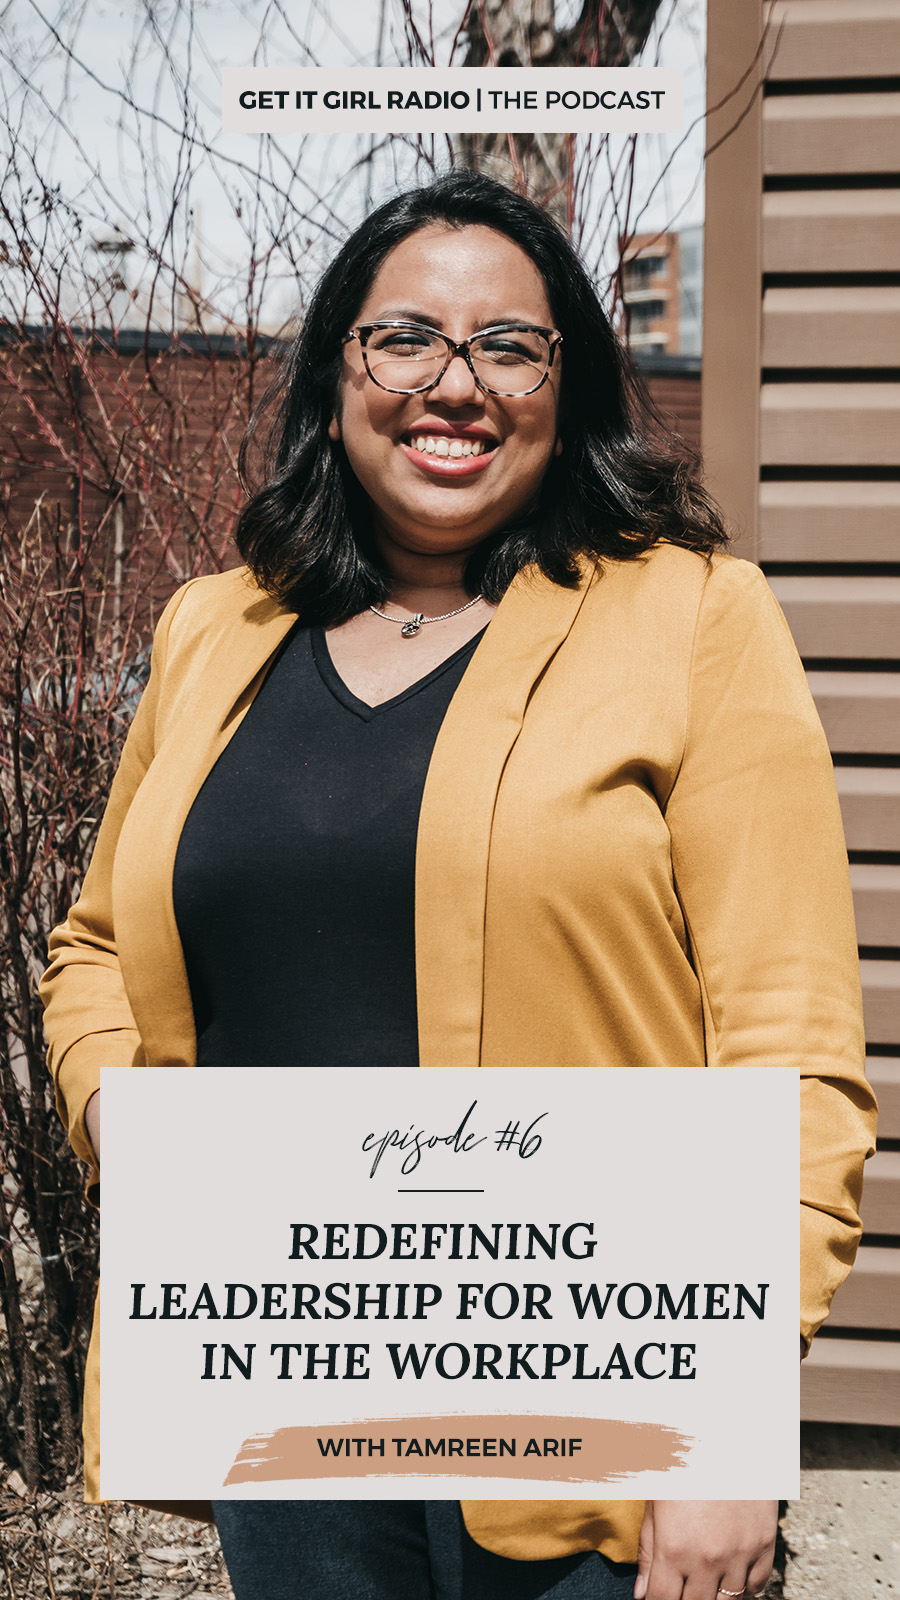 Ep. 6 | Redefining Leadership For Women In The Workplace with Tamreen Arif